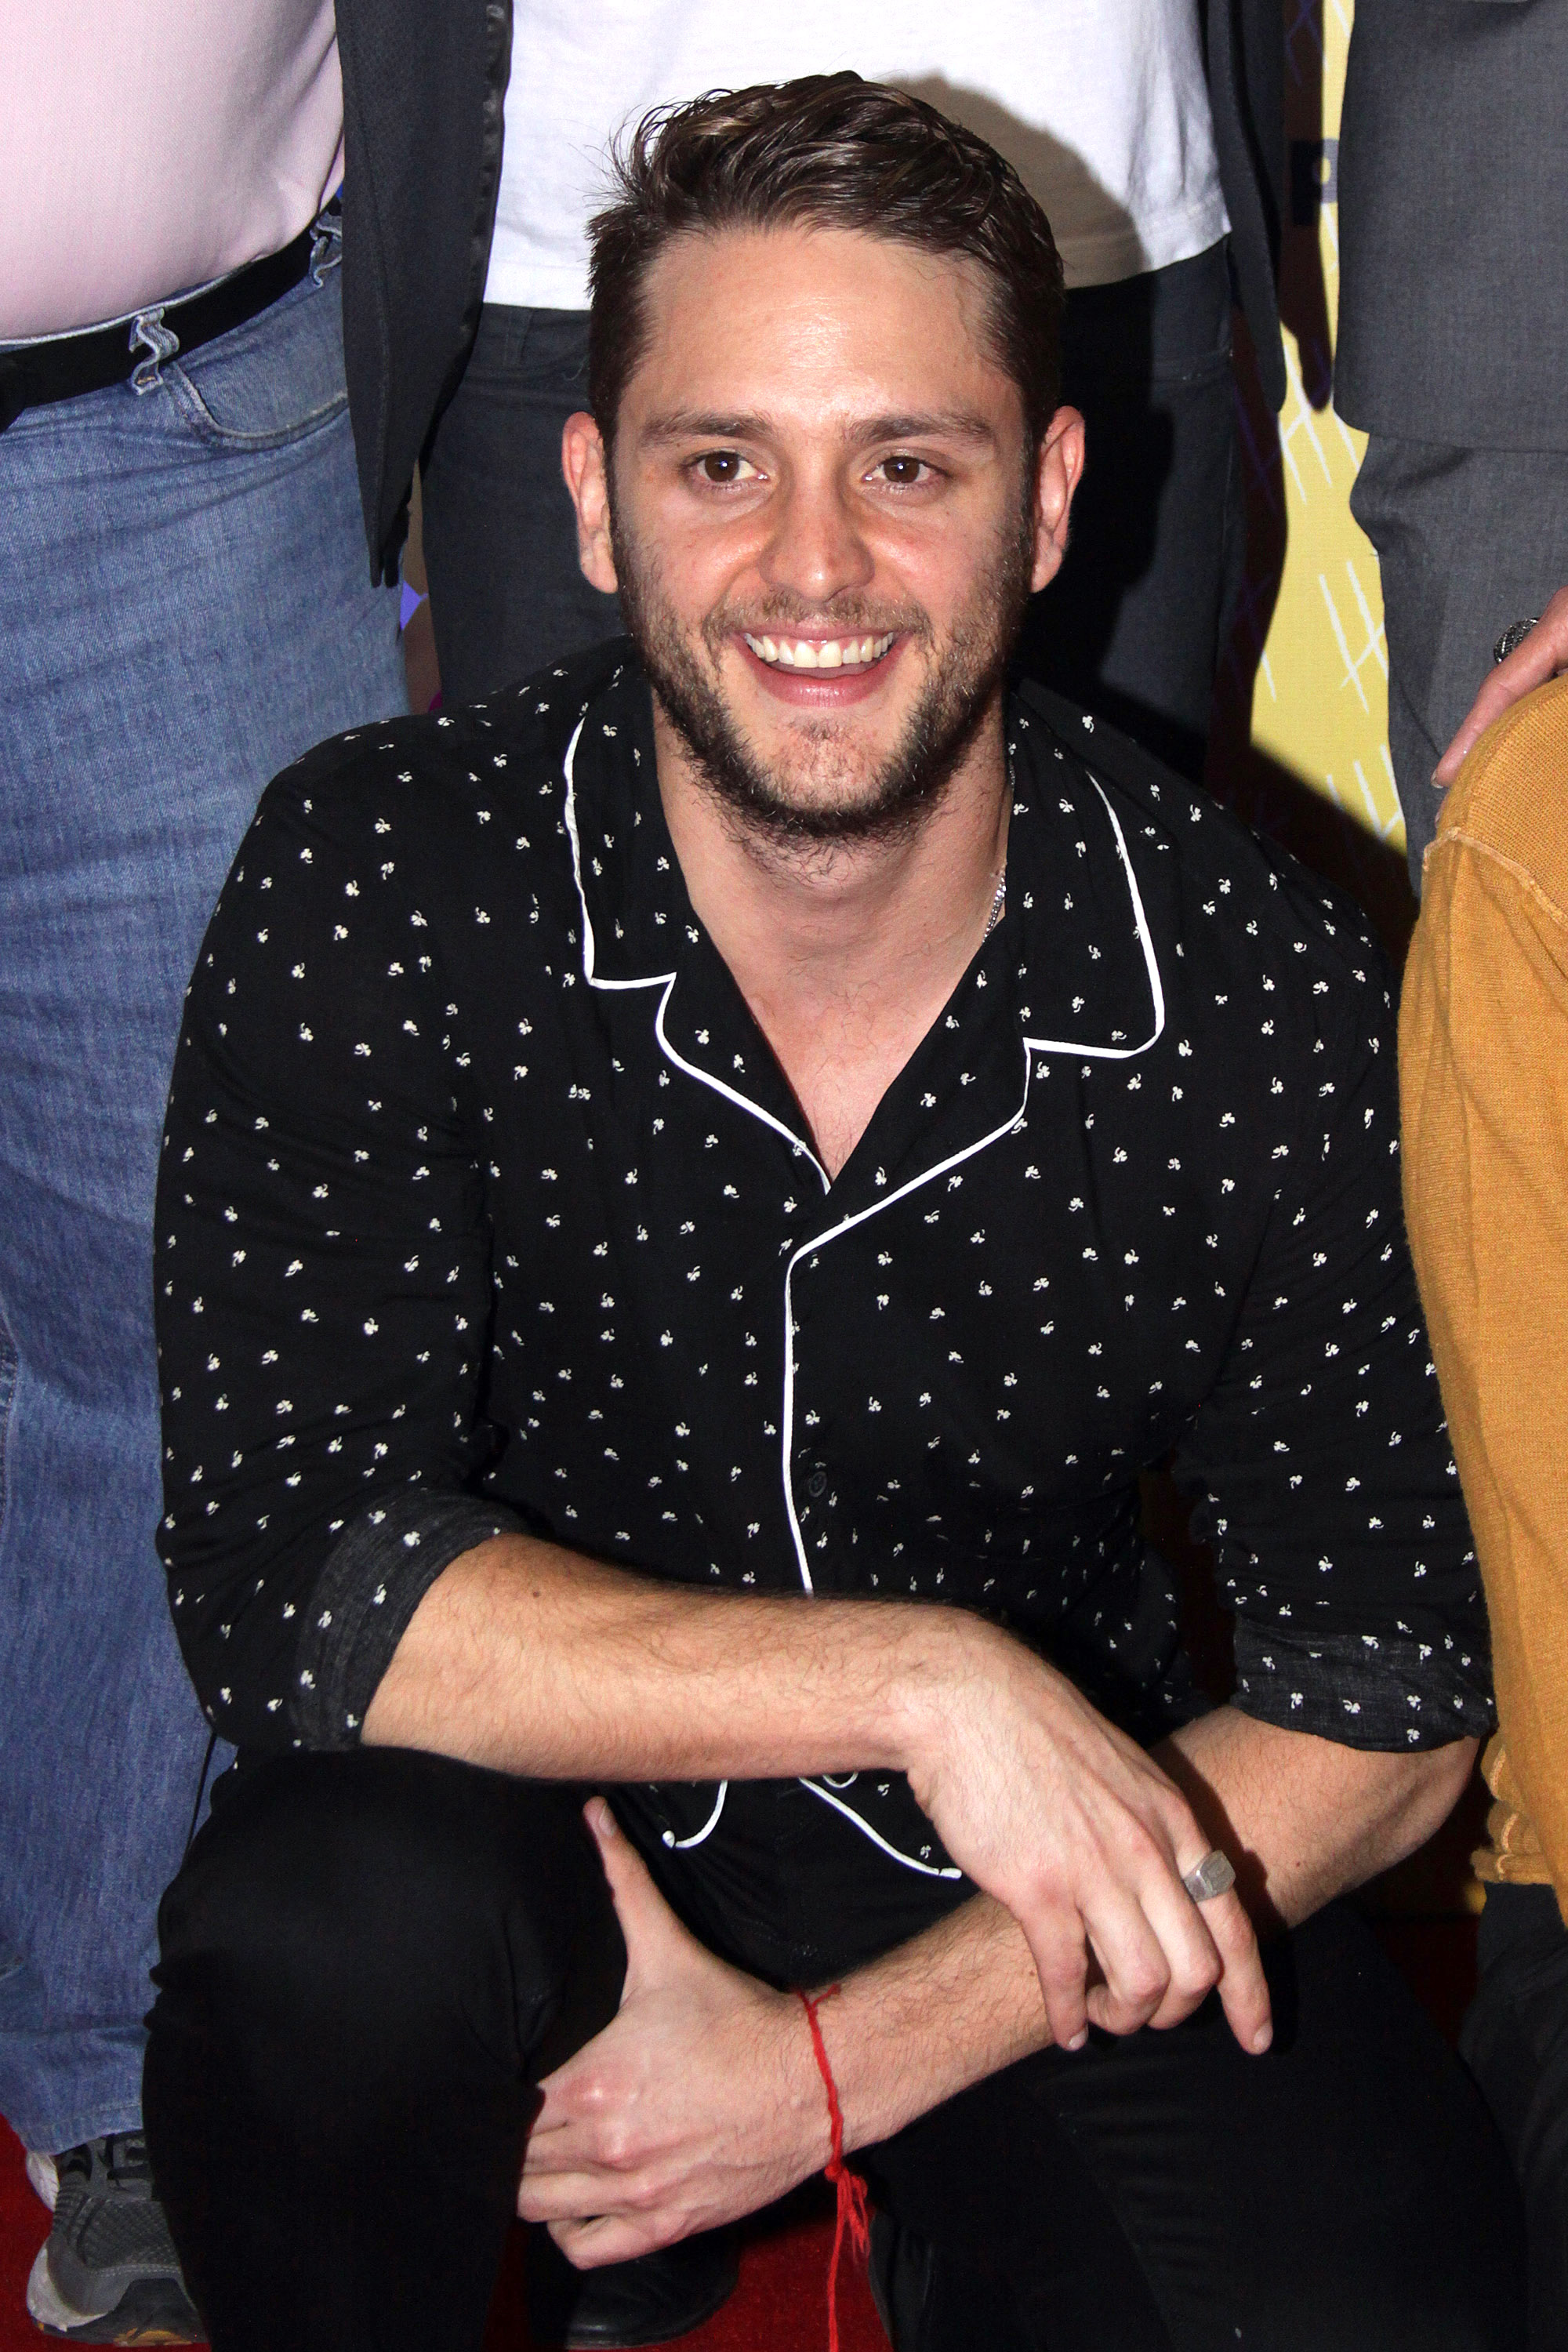 christopher-uckermann.jpg